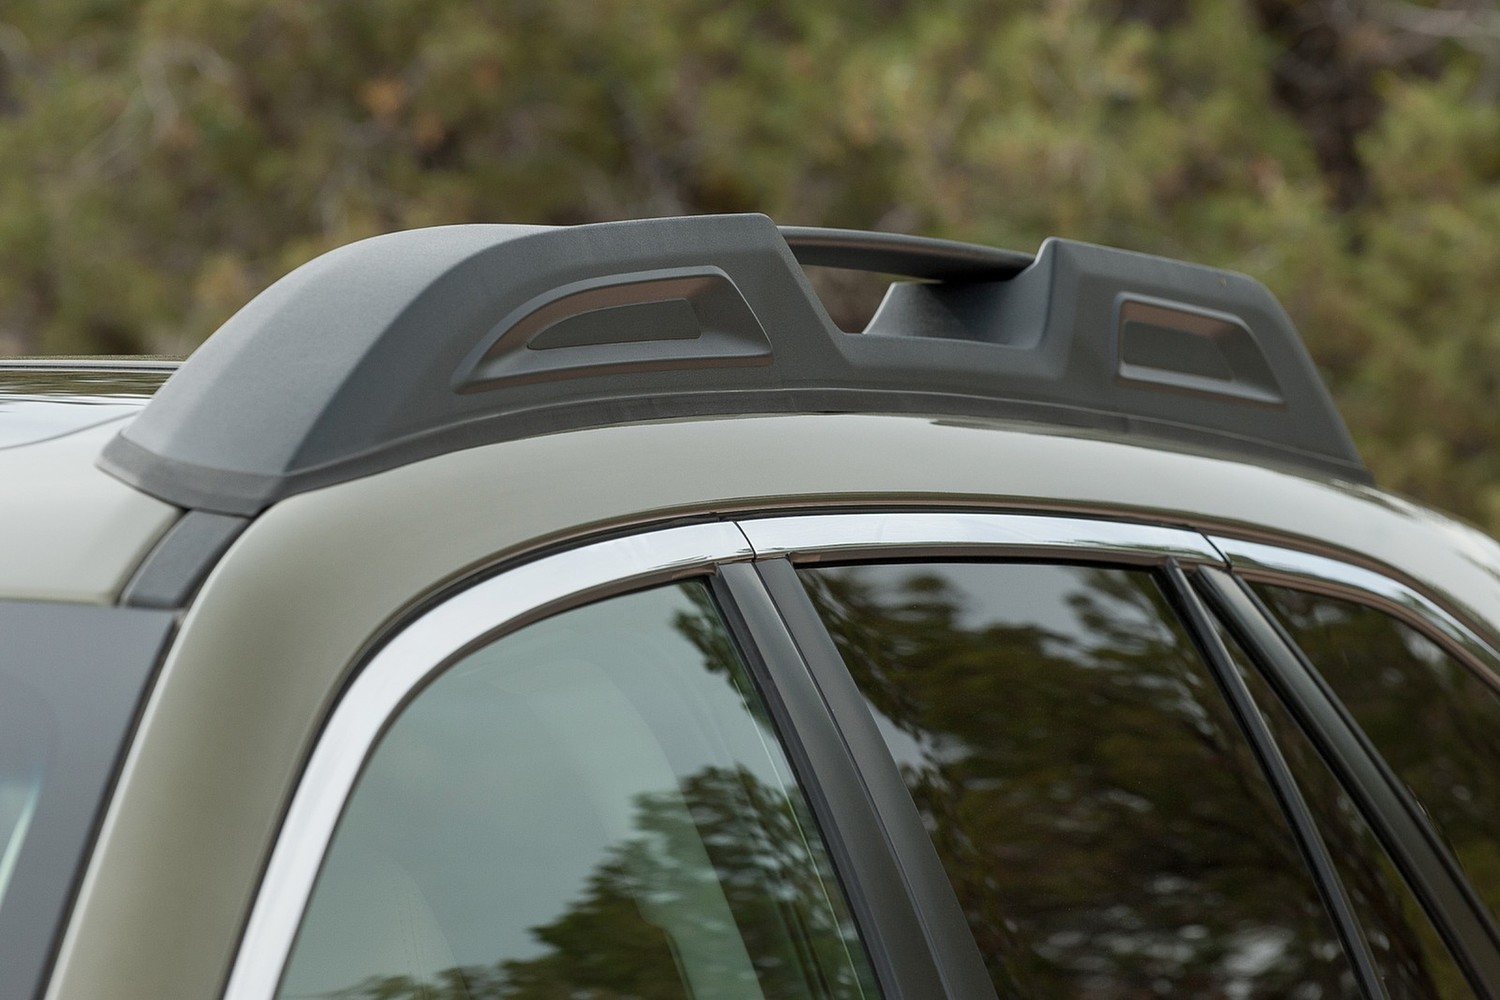 2015 Subaru Outback 3.6R Limited Wagon Exterior Detail